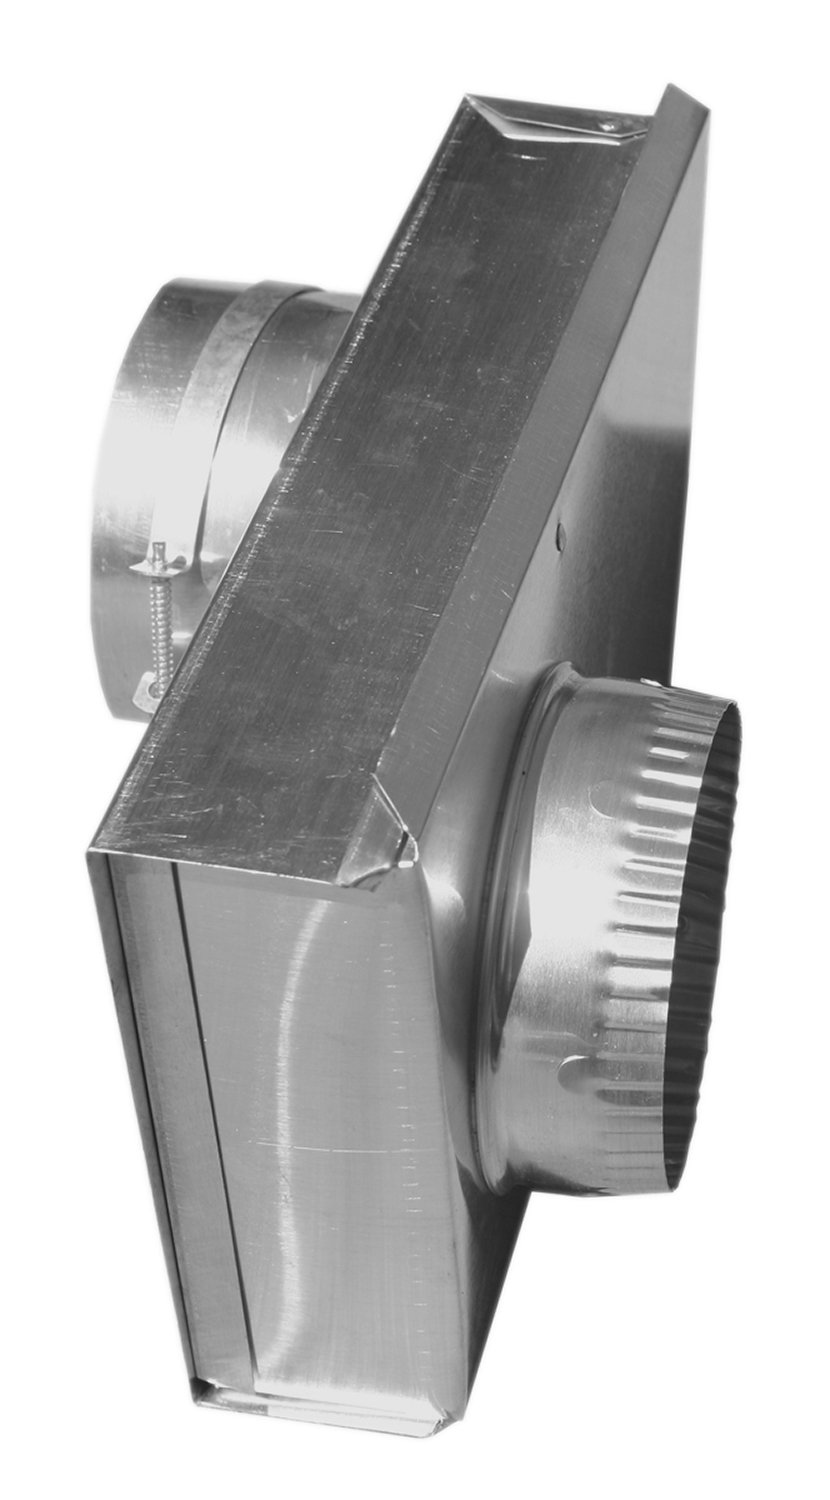 "Builder's Best 010149 Adjustable Dryer Vent Periscope, 0"" to 5"", 6"" Length, 2"" ID, Aluminum"